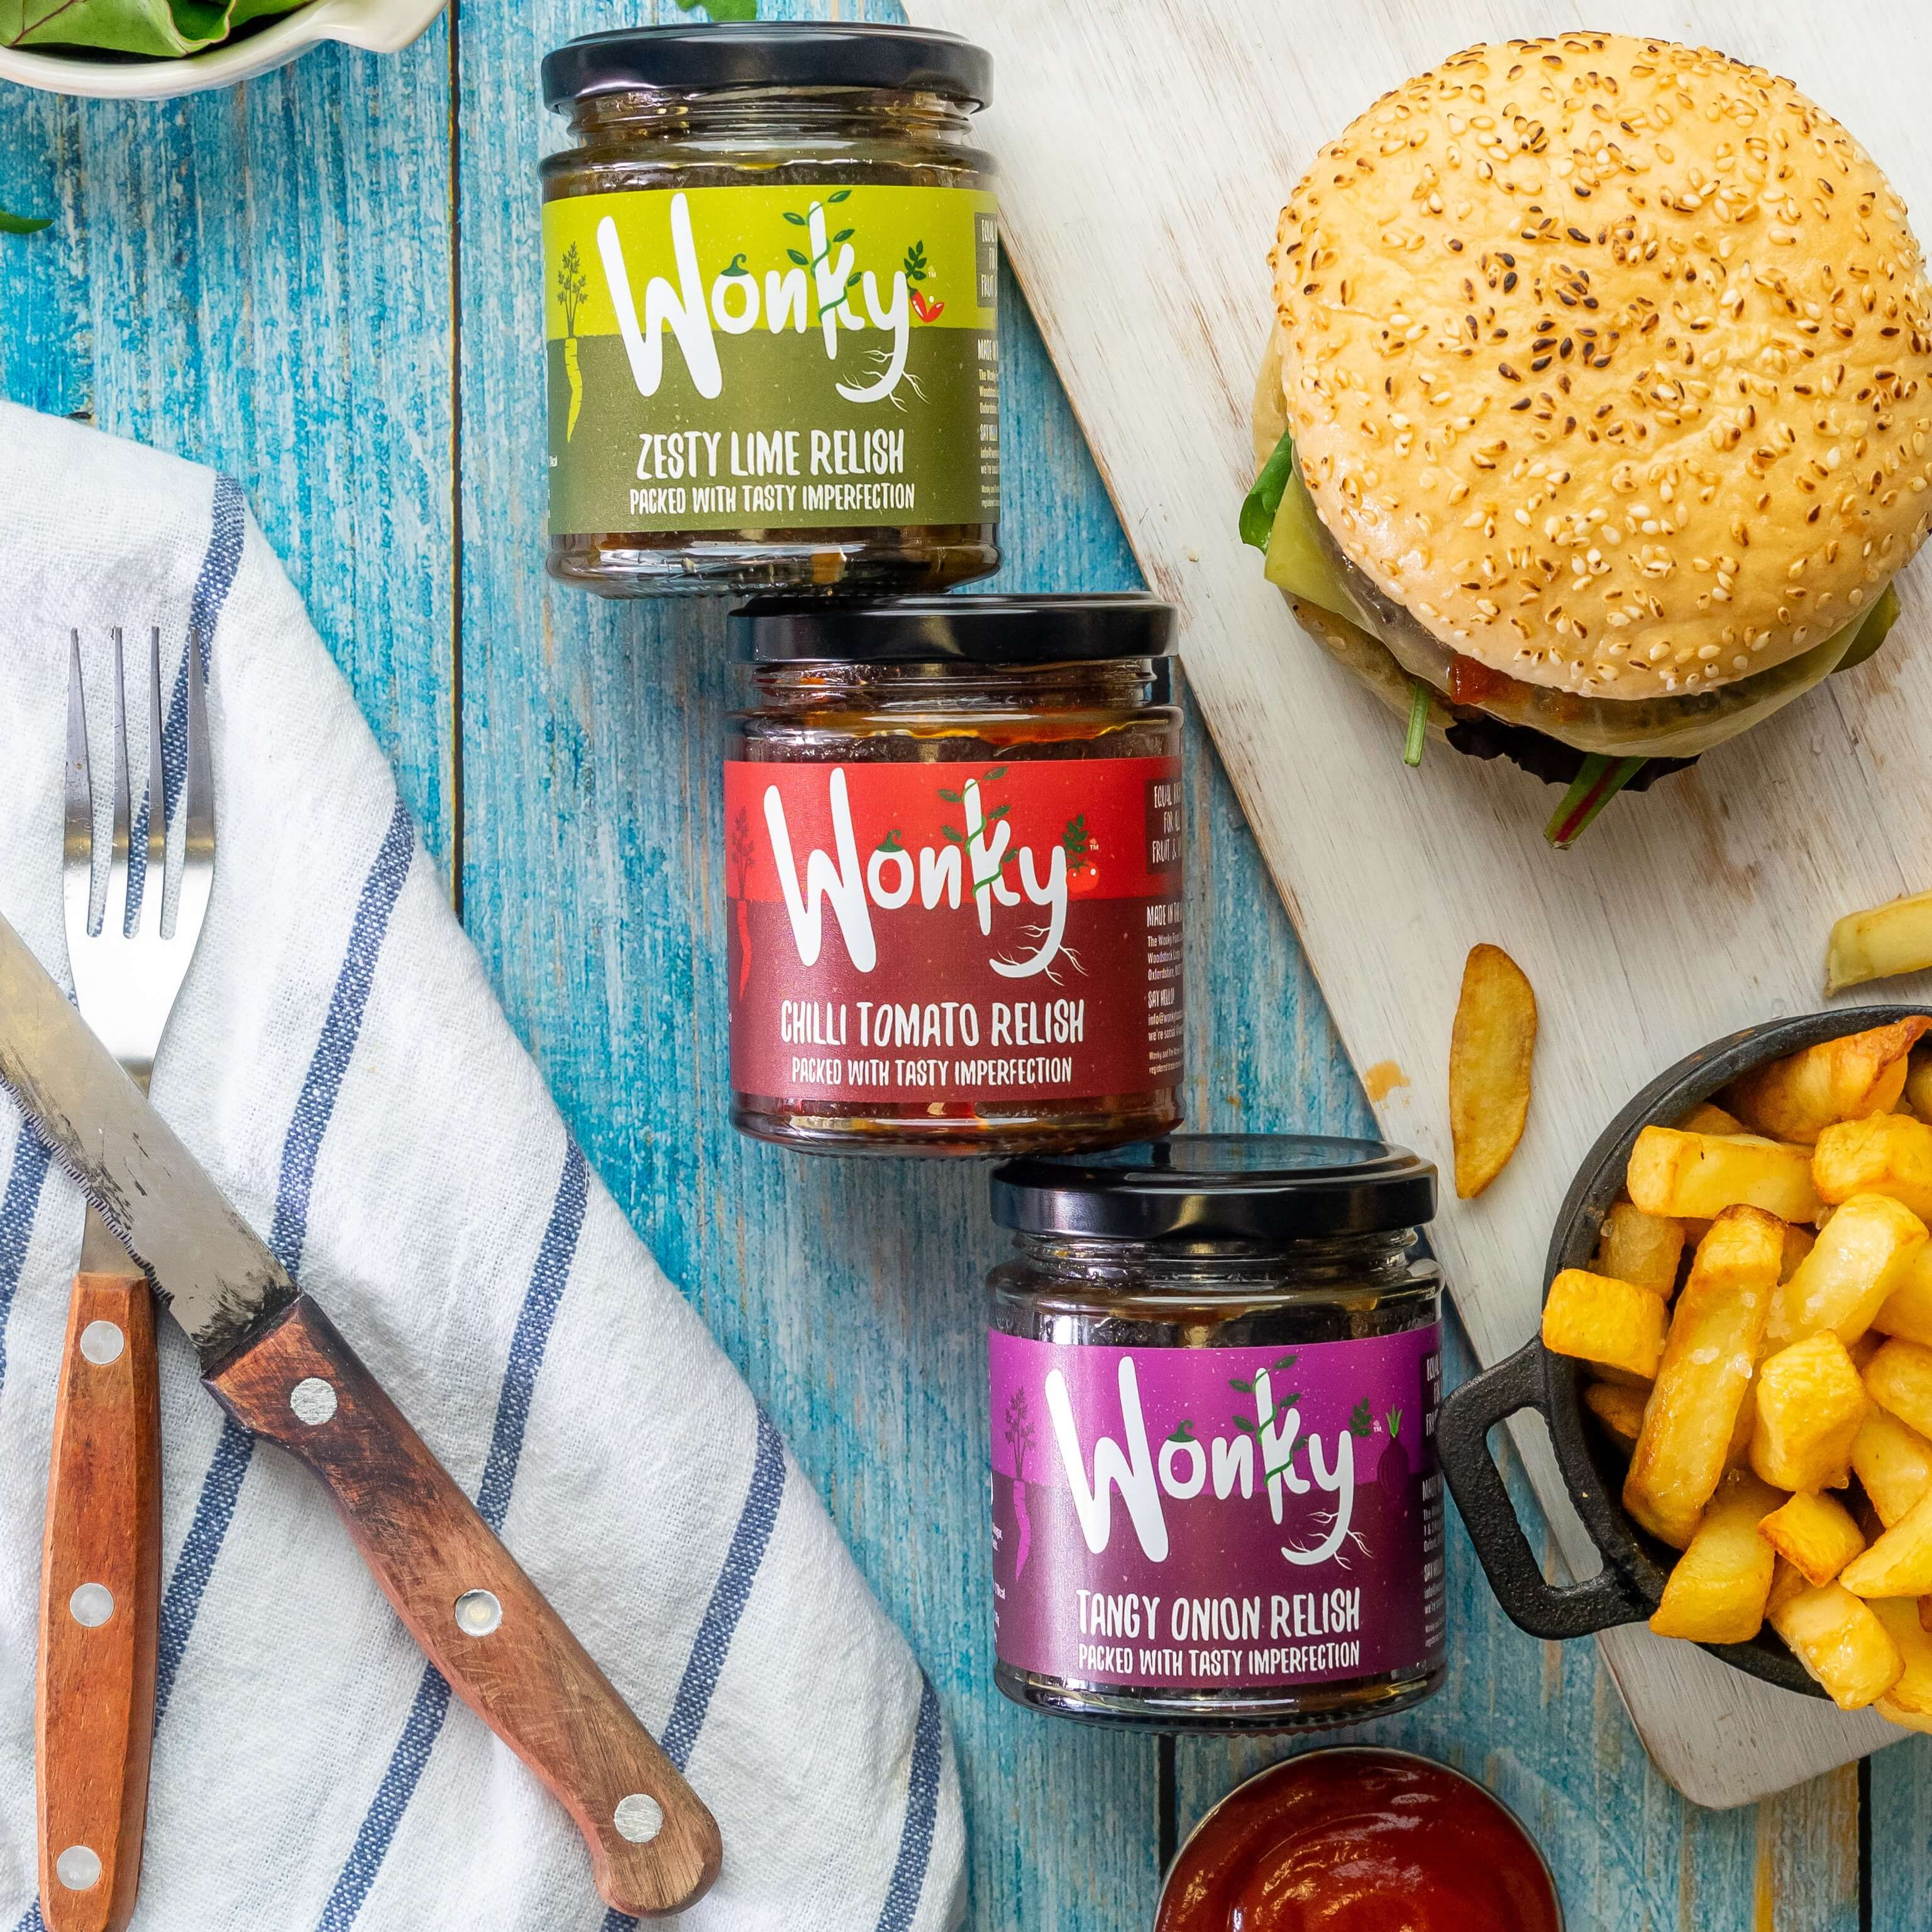 The Wonky Food Company